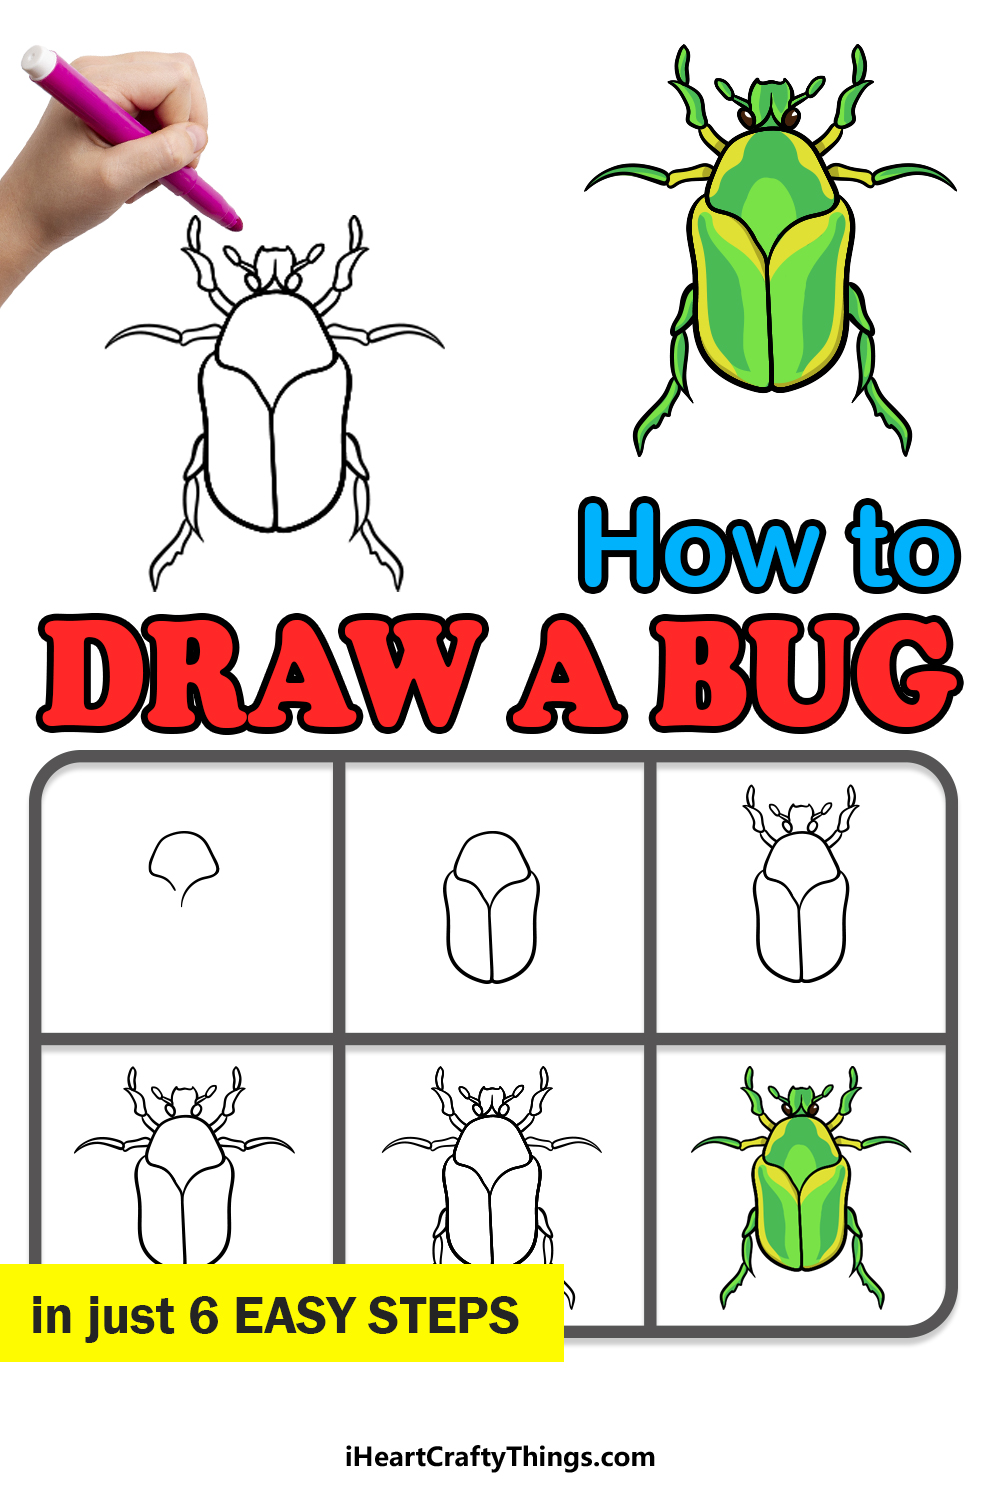 how to draw a bug in 6 easy steps